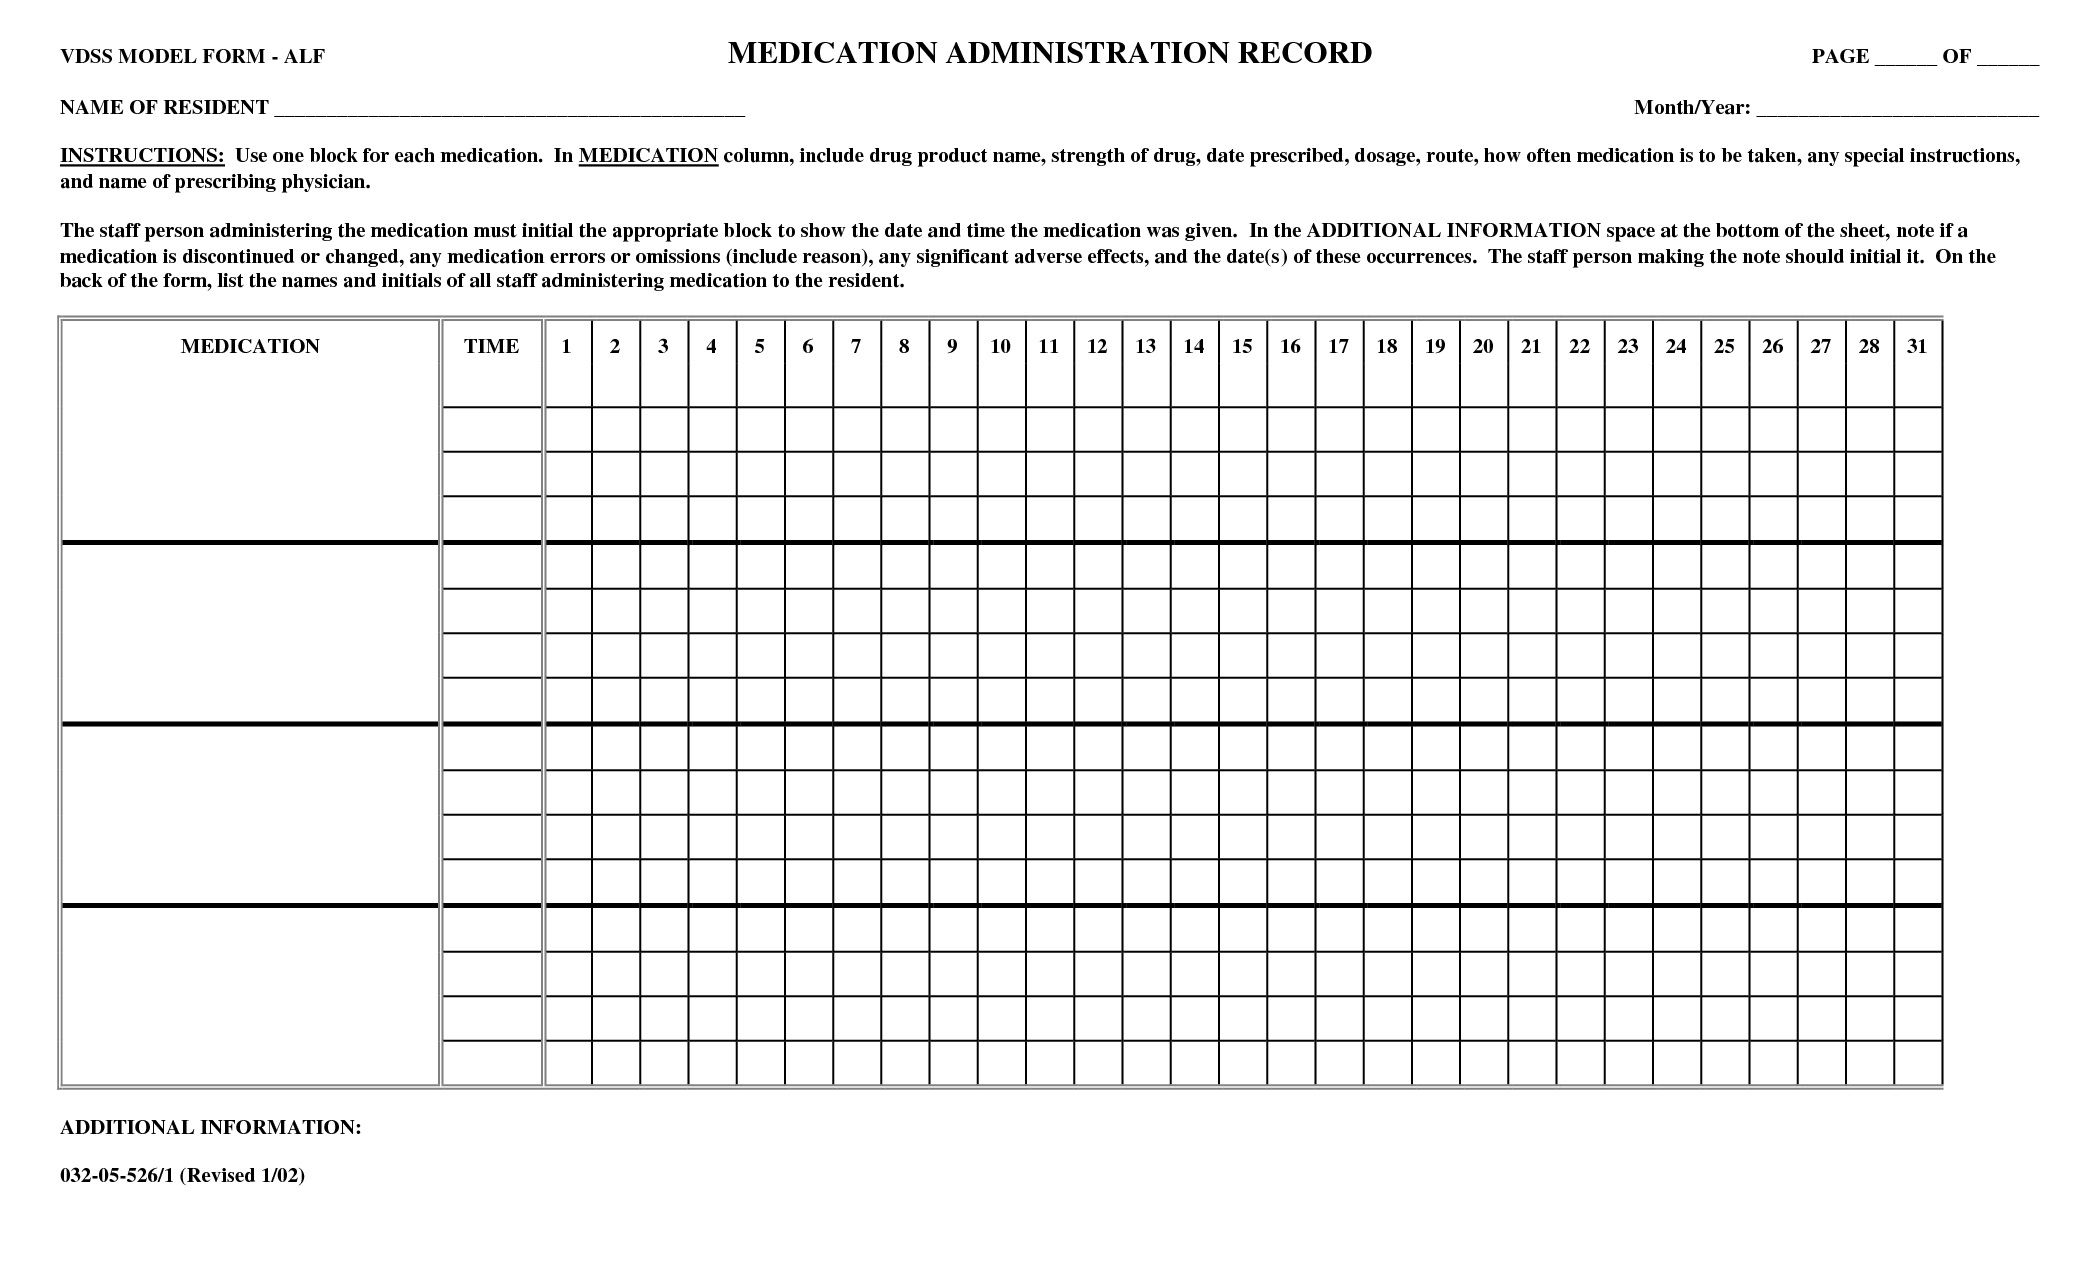 001 Unusual Medication Administration Record Template Pdf Inspiration  Simple FreeFull